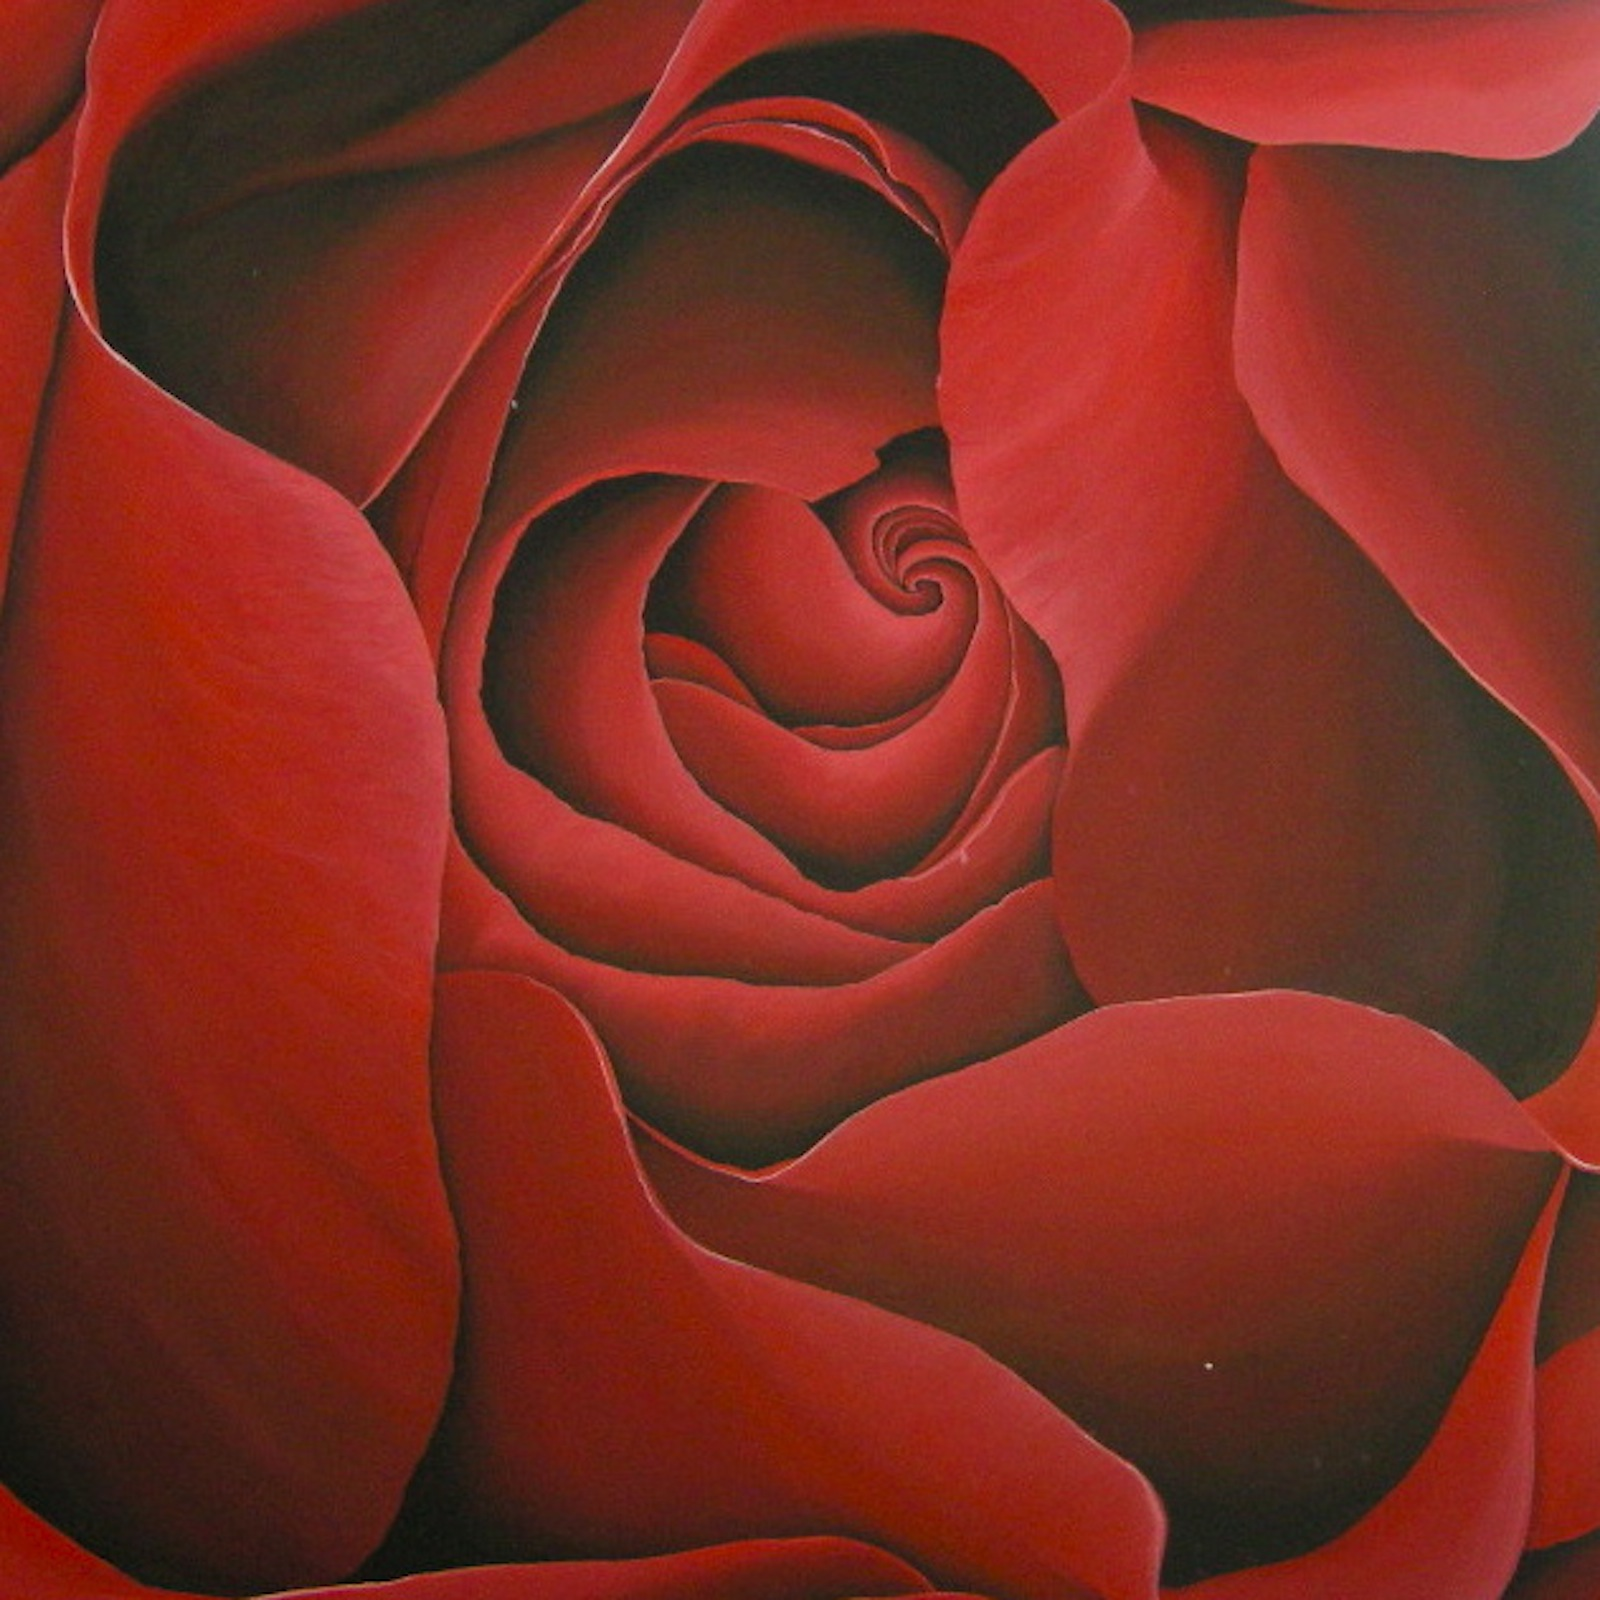 red-rose-for-eva-cystic-fybrosis-48x48-2010